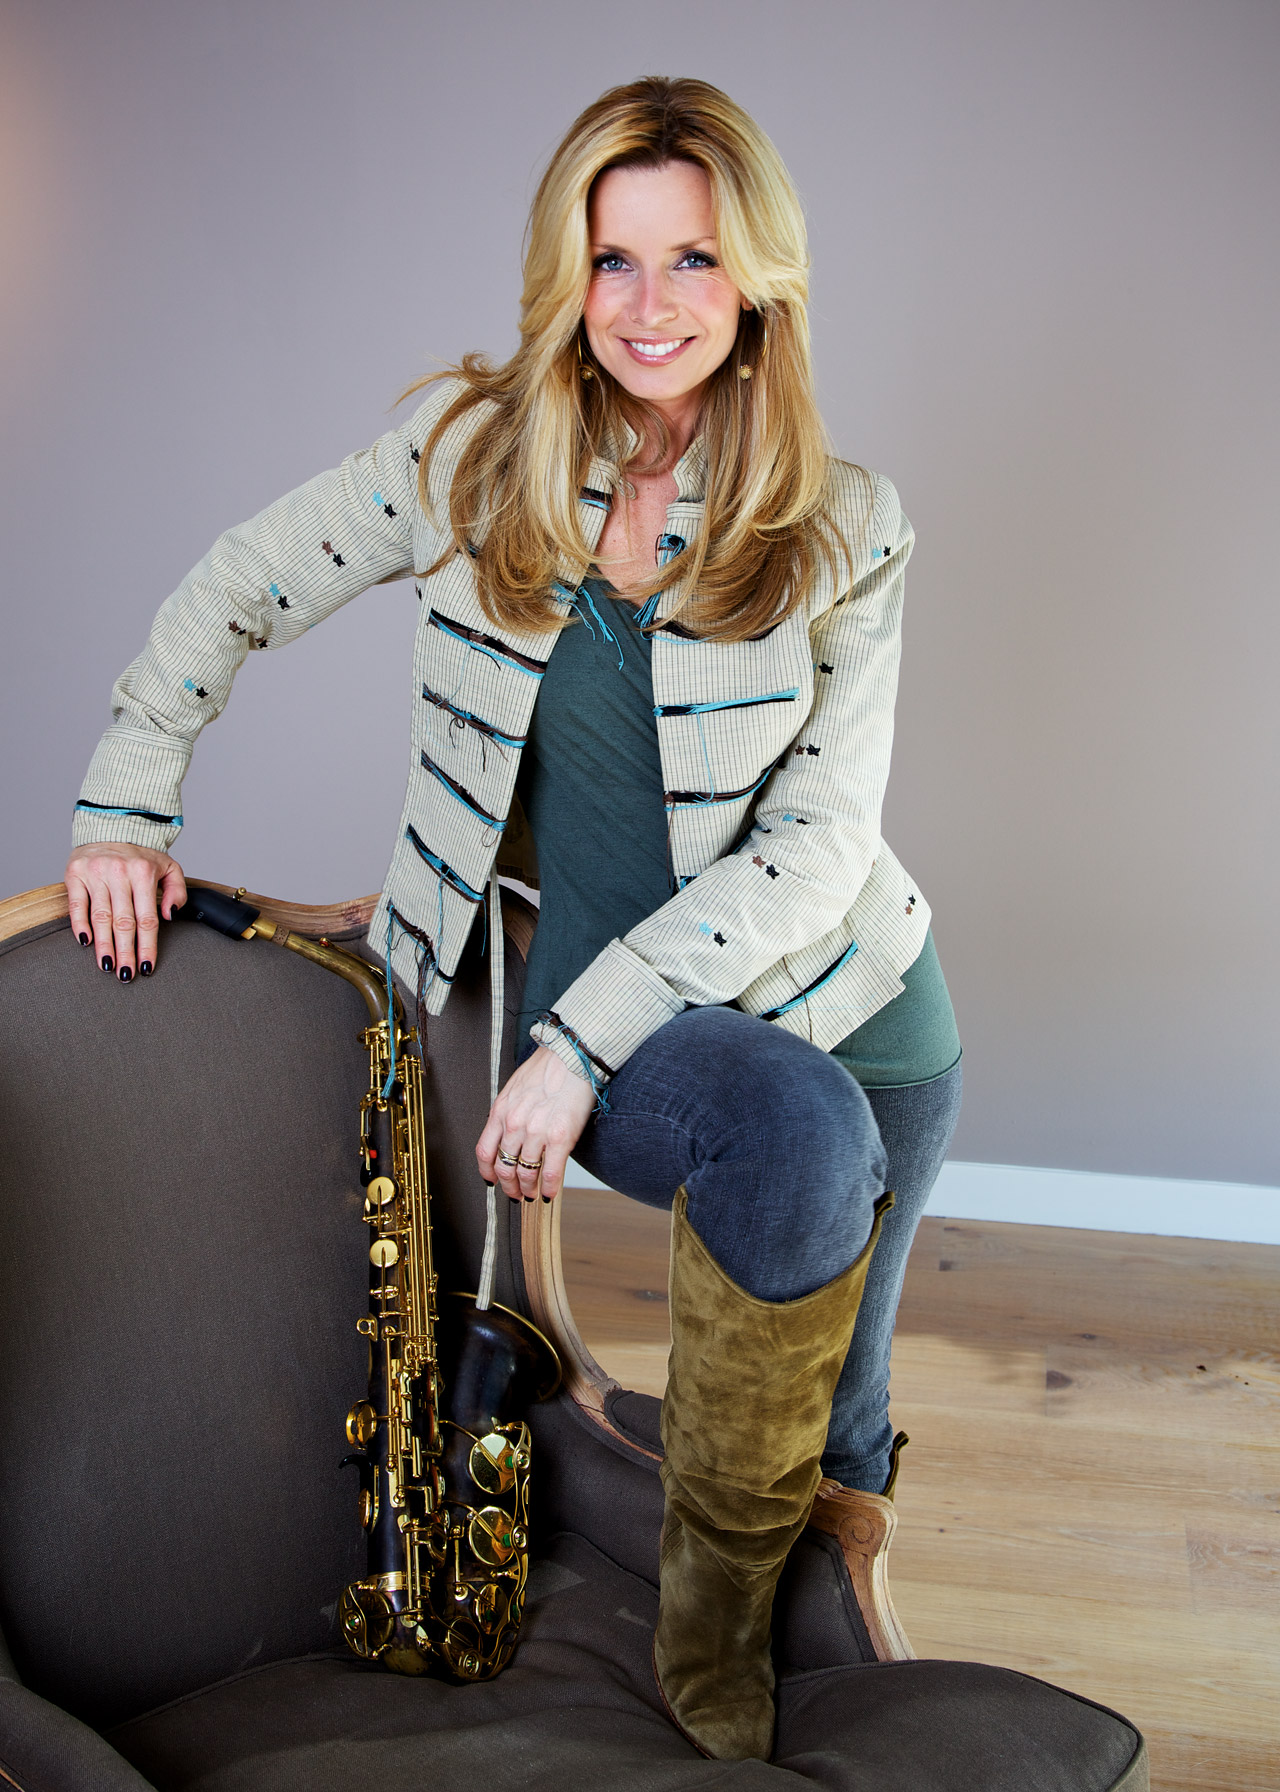 Saxophonist Candy Dulfer, Amsterdam